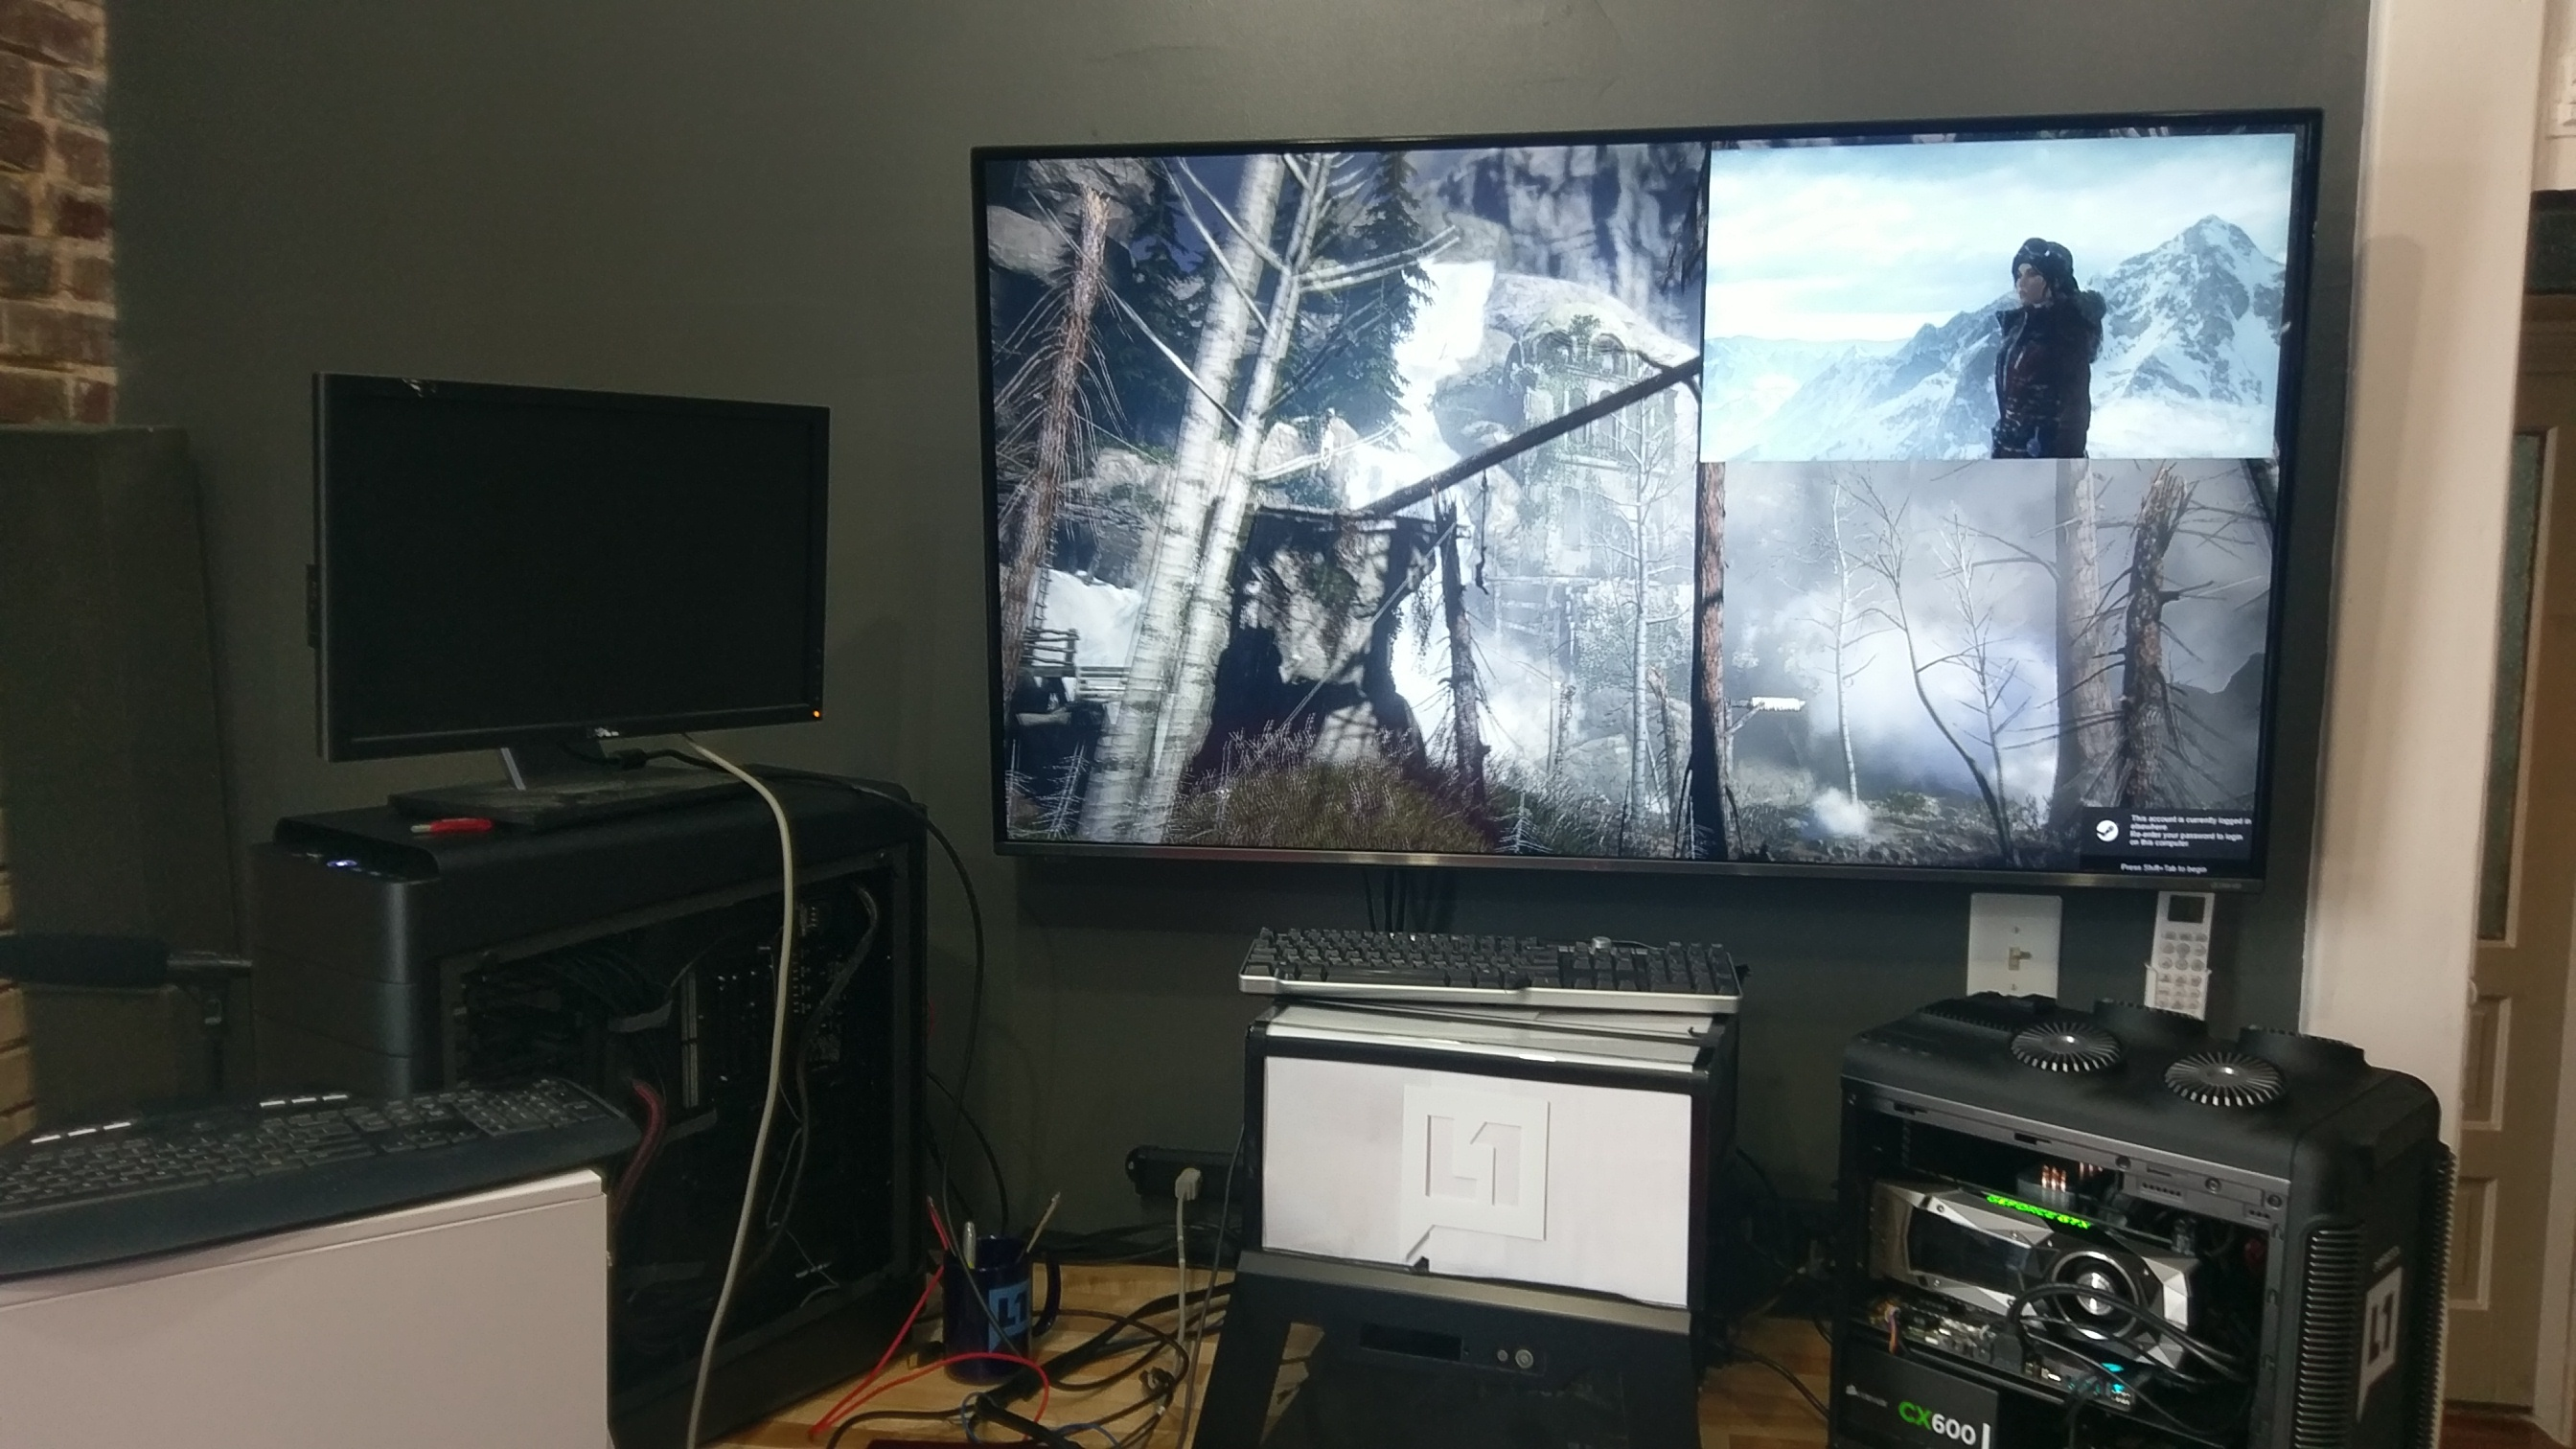 Quickie Rise of the Tomb Raider DX12 testing on Ryzen vs Kaby Lake